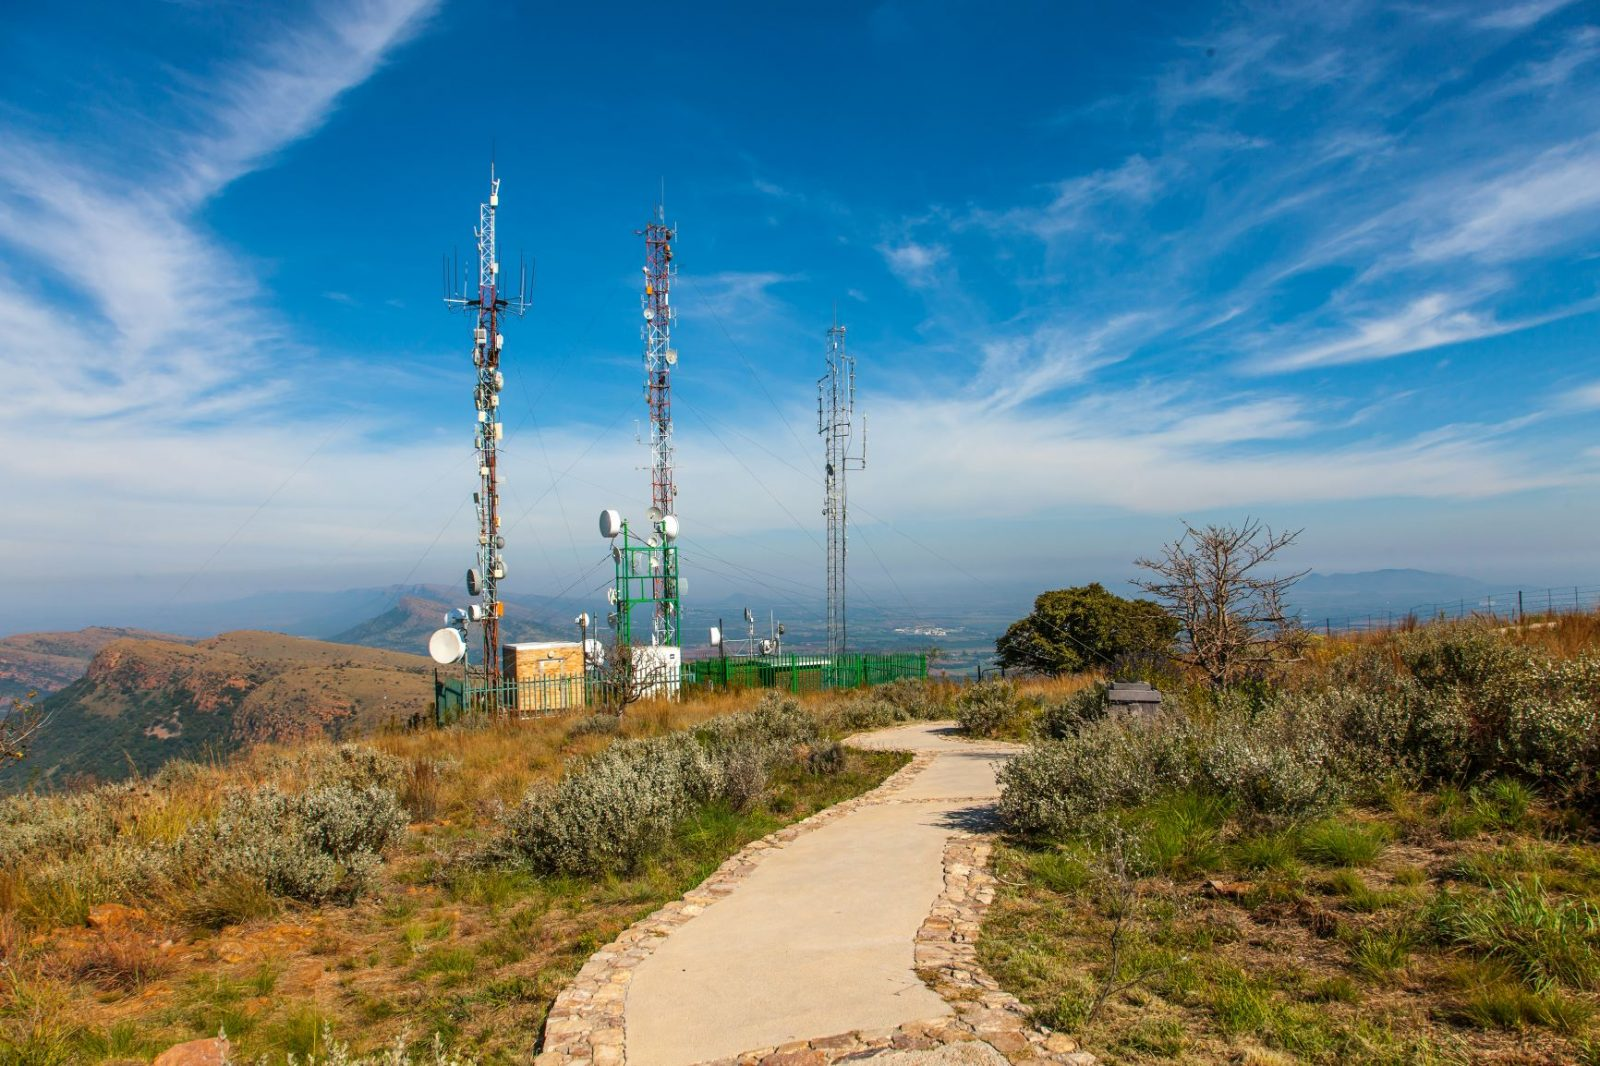 Cell Tower in South Africa. USTDA promotes ICT infrastructure in Africa and U.S. exports of goods and services.